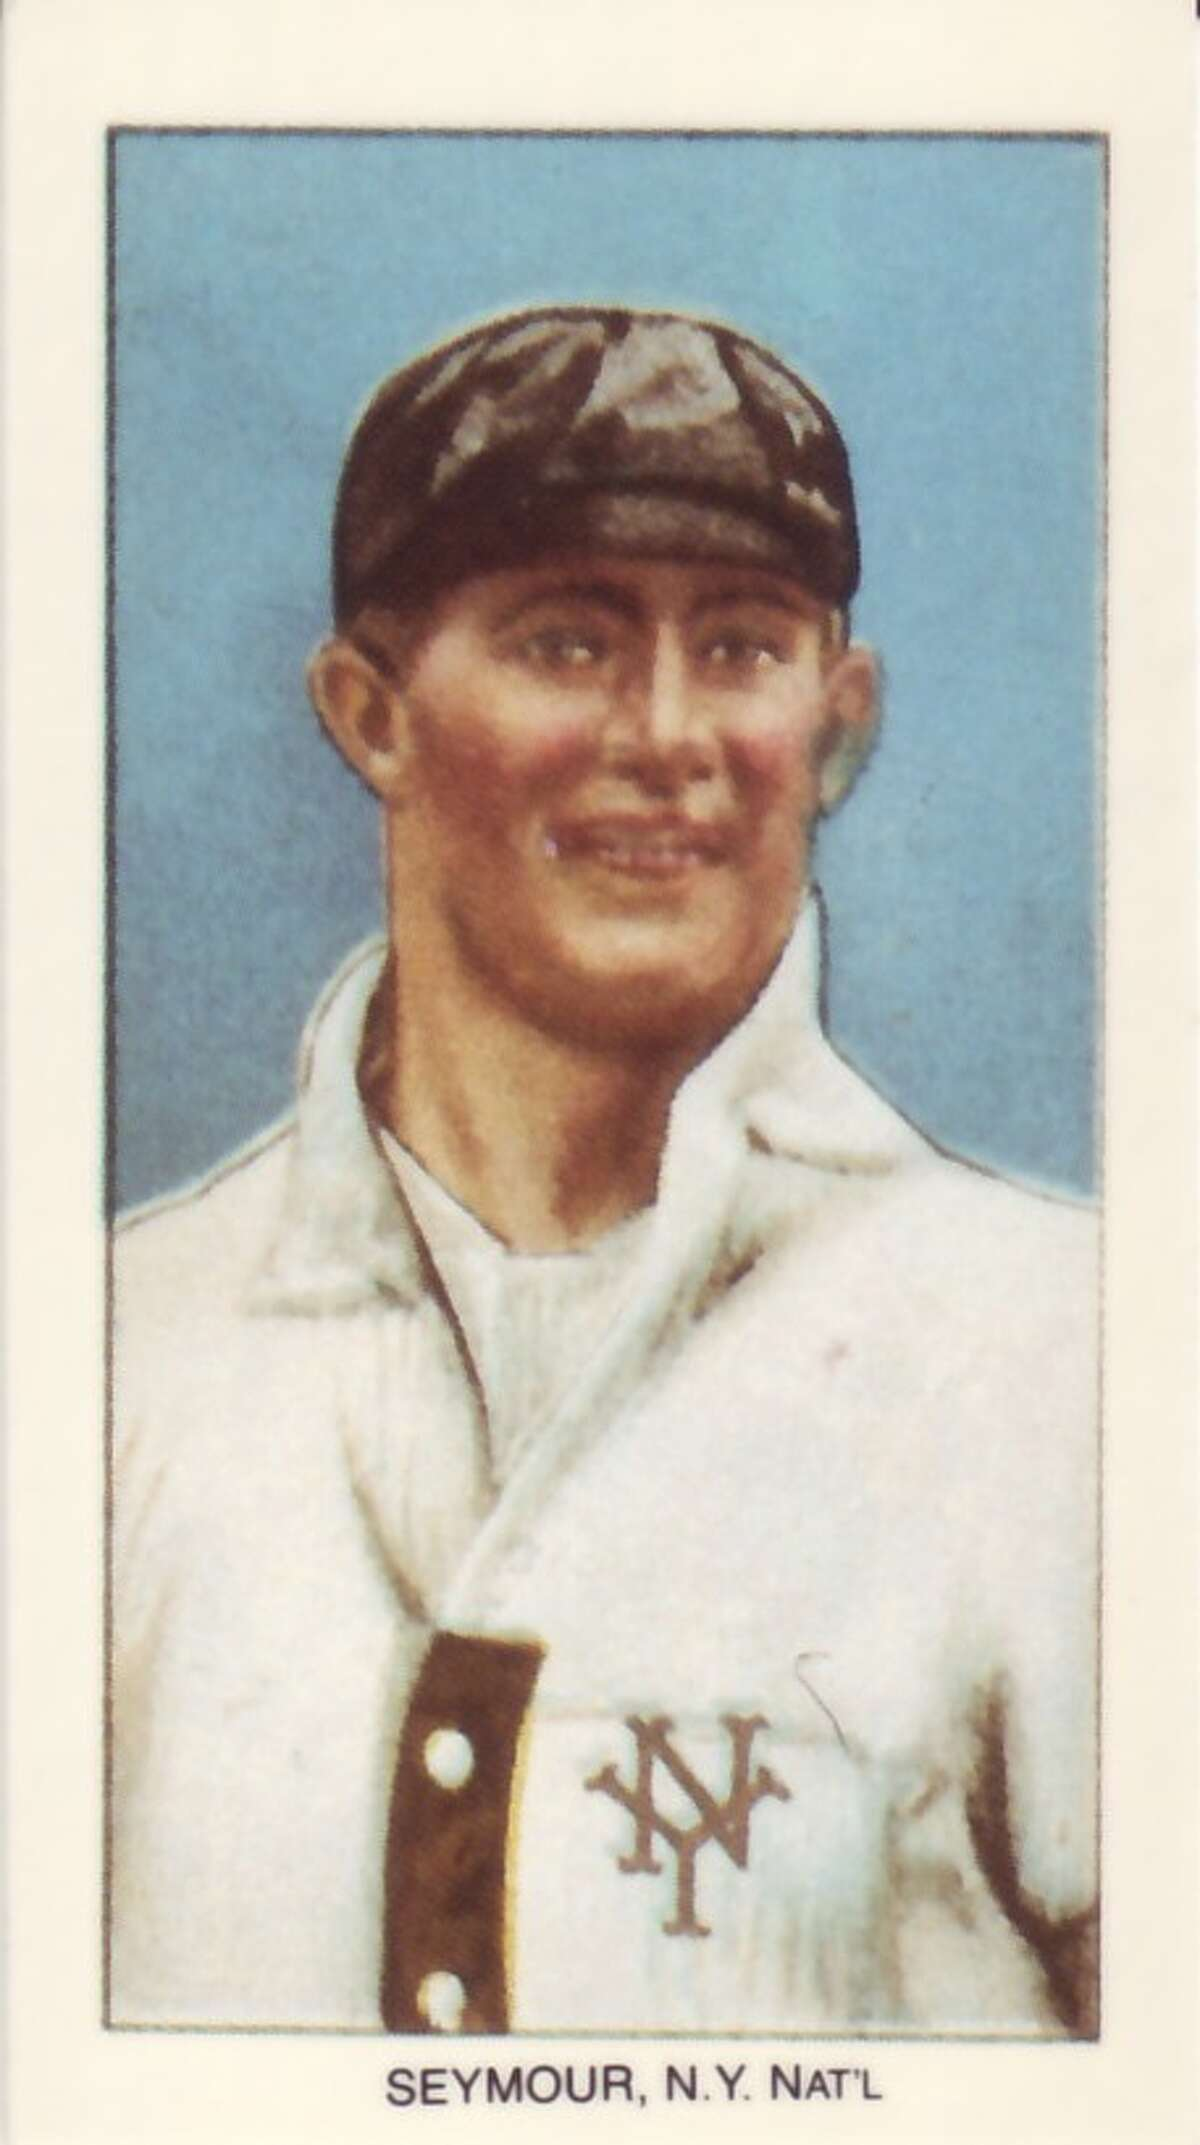 """James Bentley """"Cy"""" Seymour (1878-1919) 1909-1911 T206 White Border tobacco card produced by the American Tobacco Trust. Published with permission from """"The T206 Collection: The Players & Their Stories"""" by Tom and Ellen Zappala."""